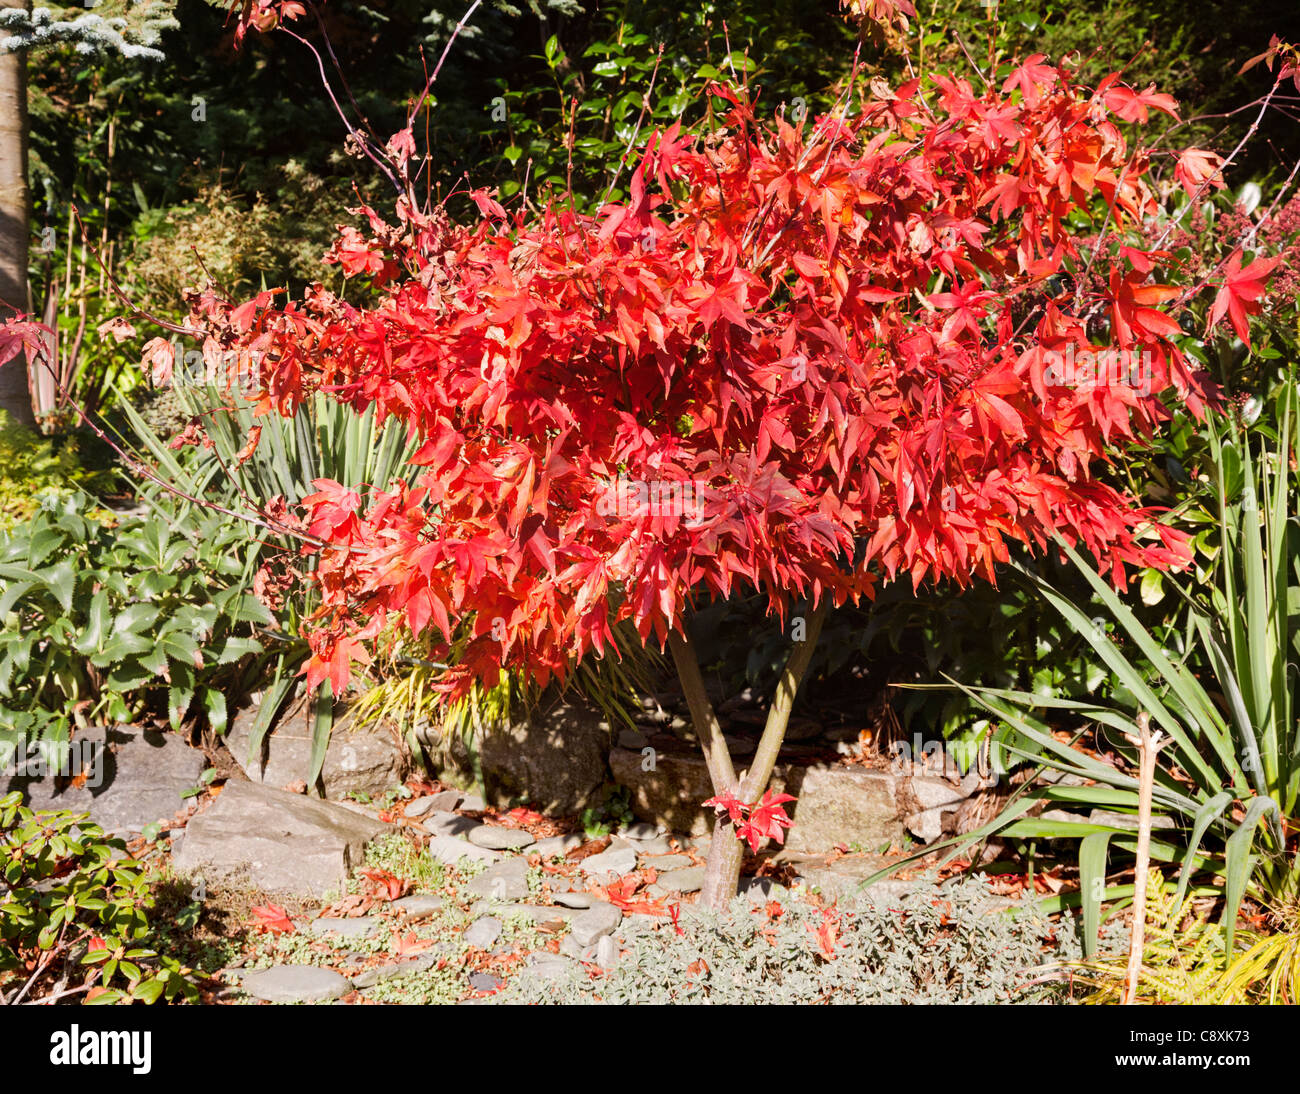 Vibrant red leaves of a Japanese maple in Autumn colour, Britain Stock Photo